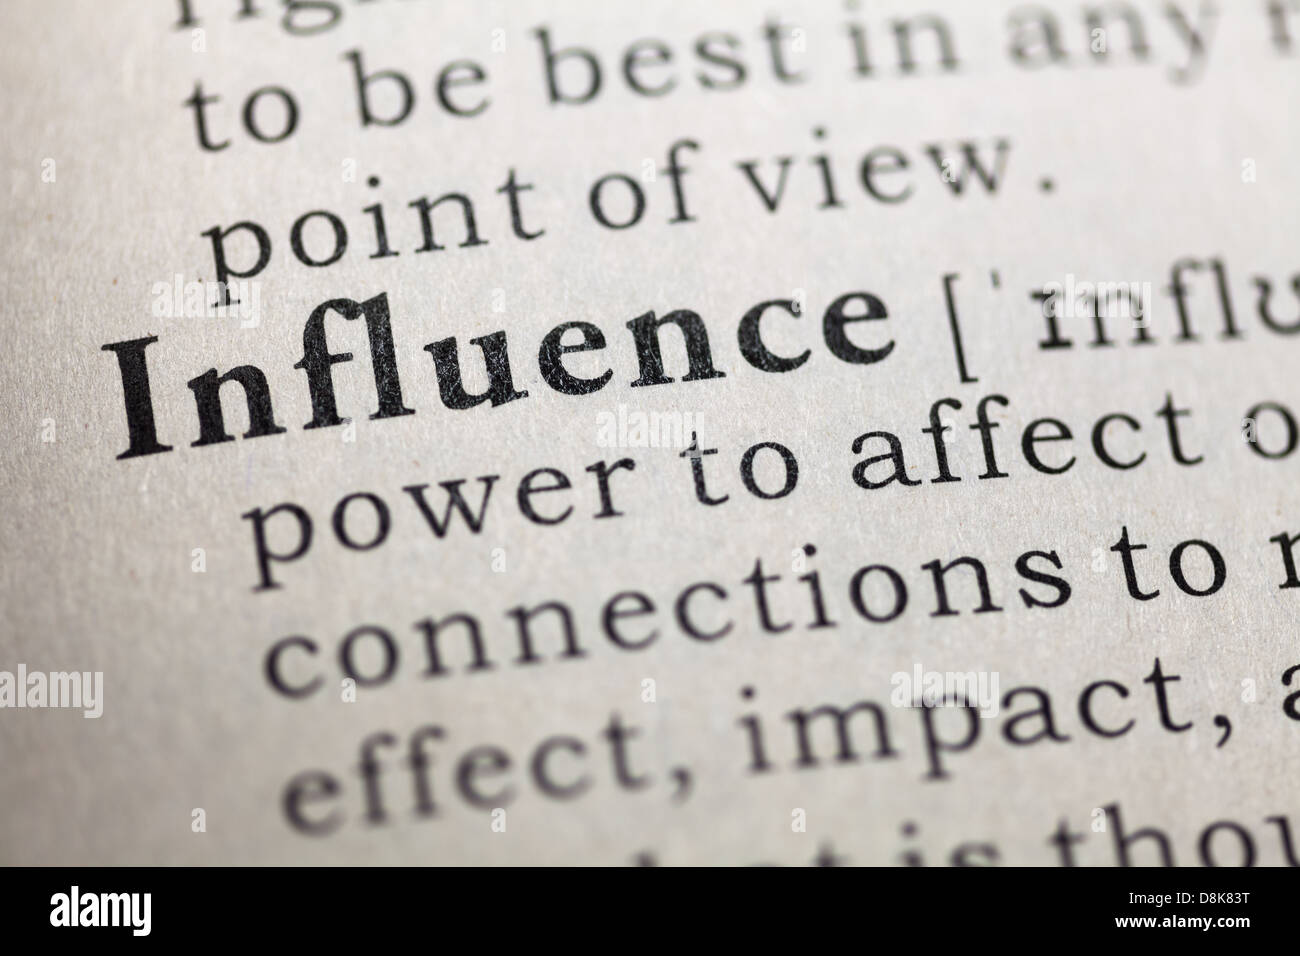 Dictionary definition of the word influence. - Stock Image